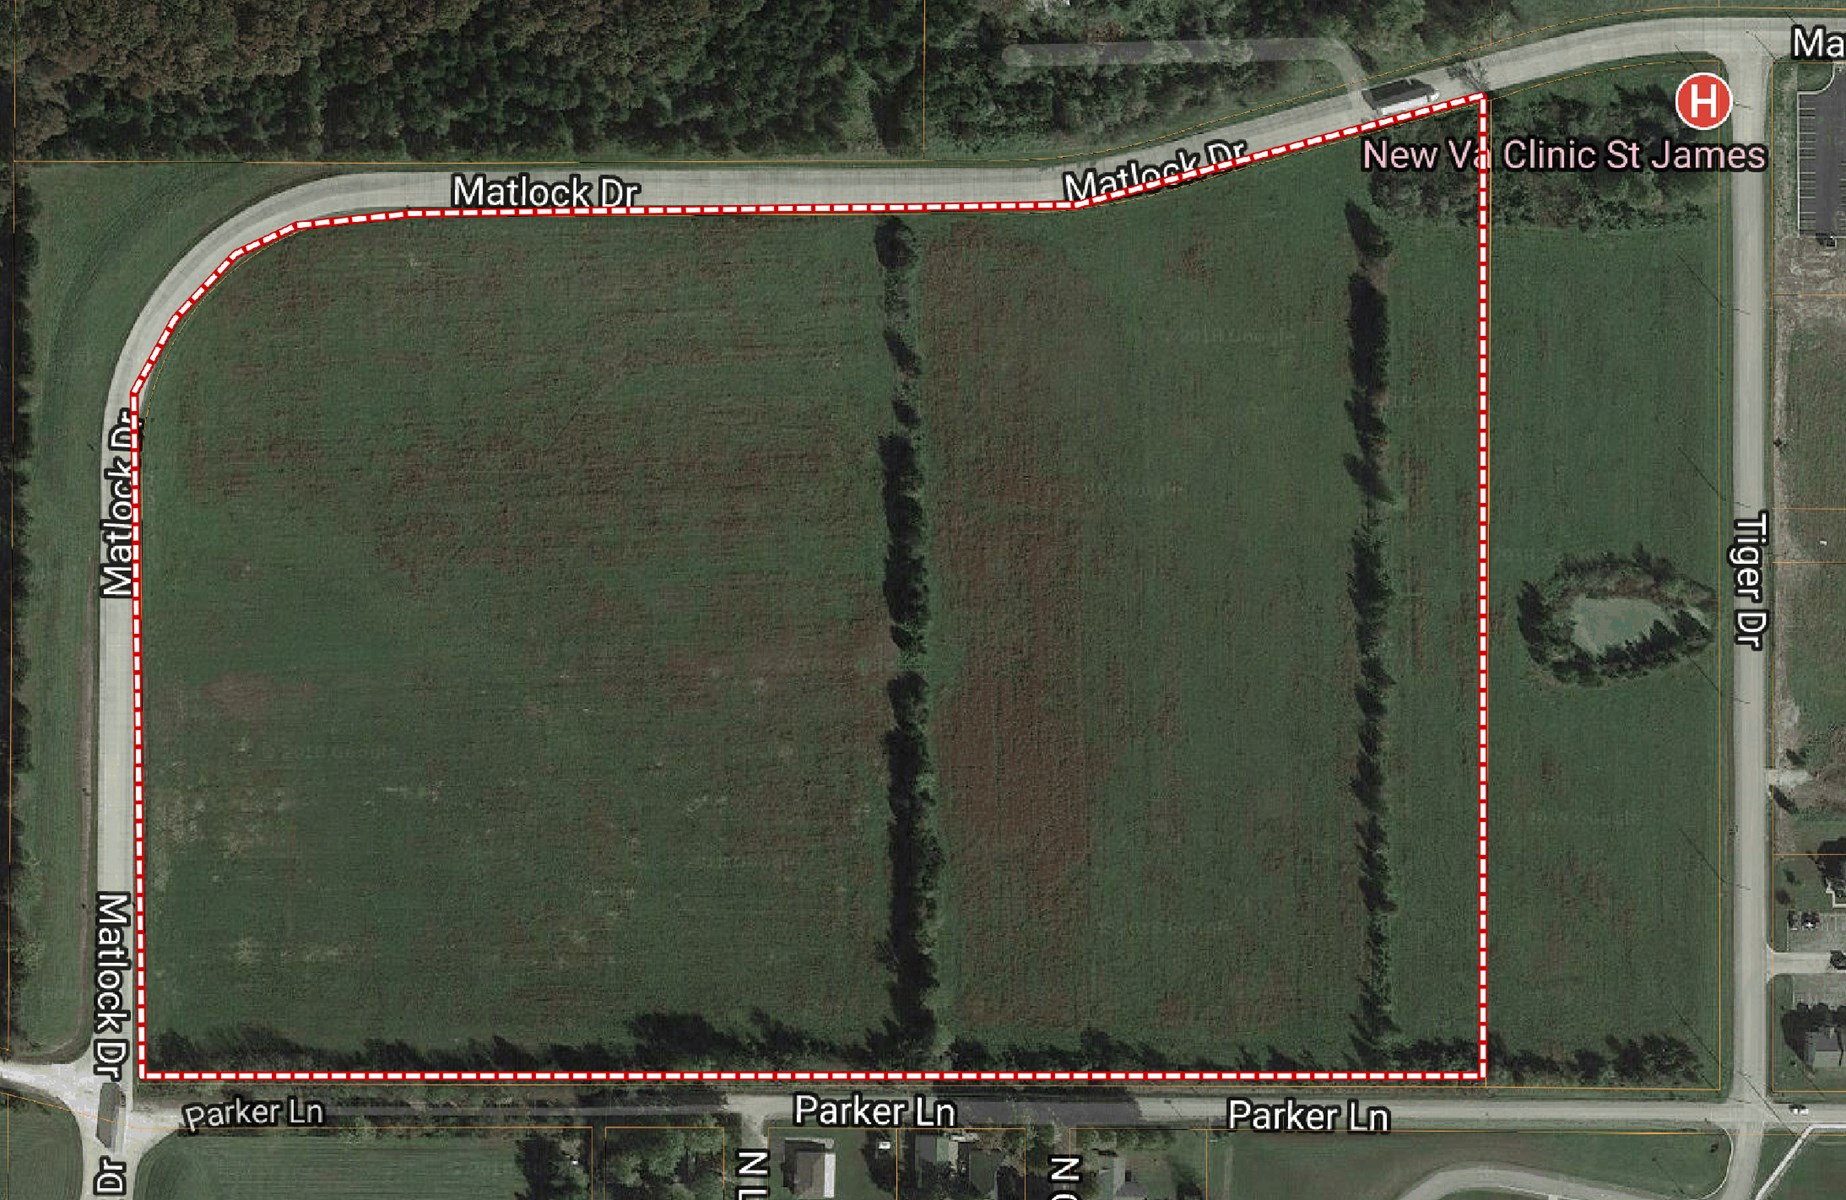 COMMERCIAL LAND FOR SALE IN MO- 35 + ACRES NEAR ST.JAMES MO